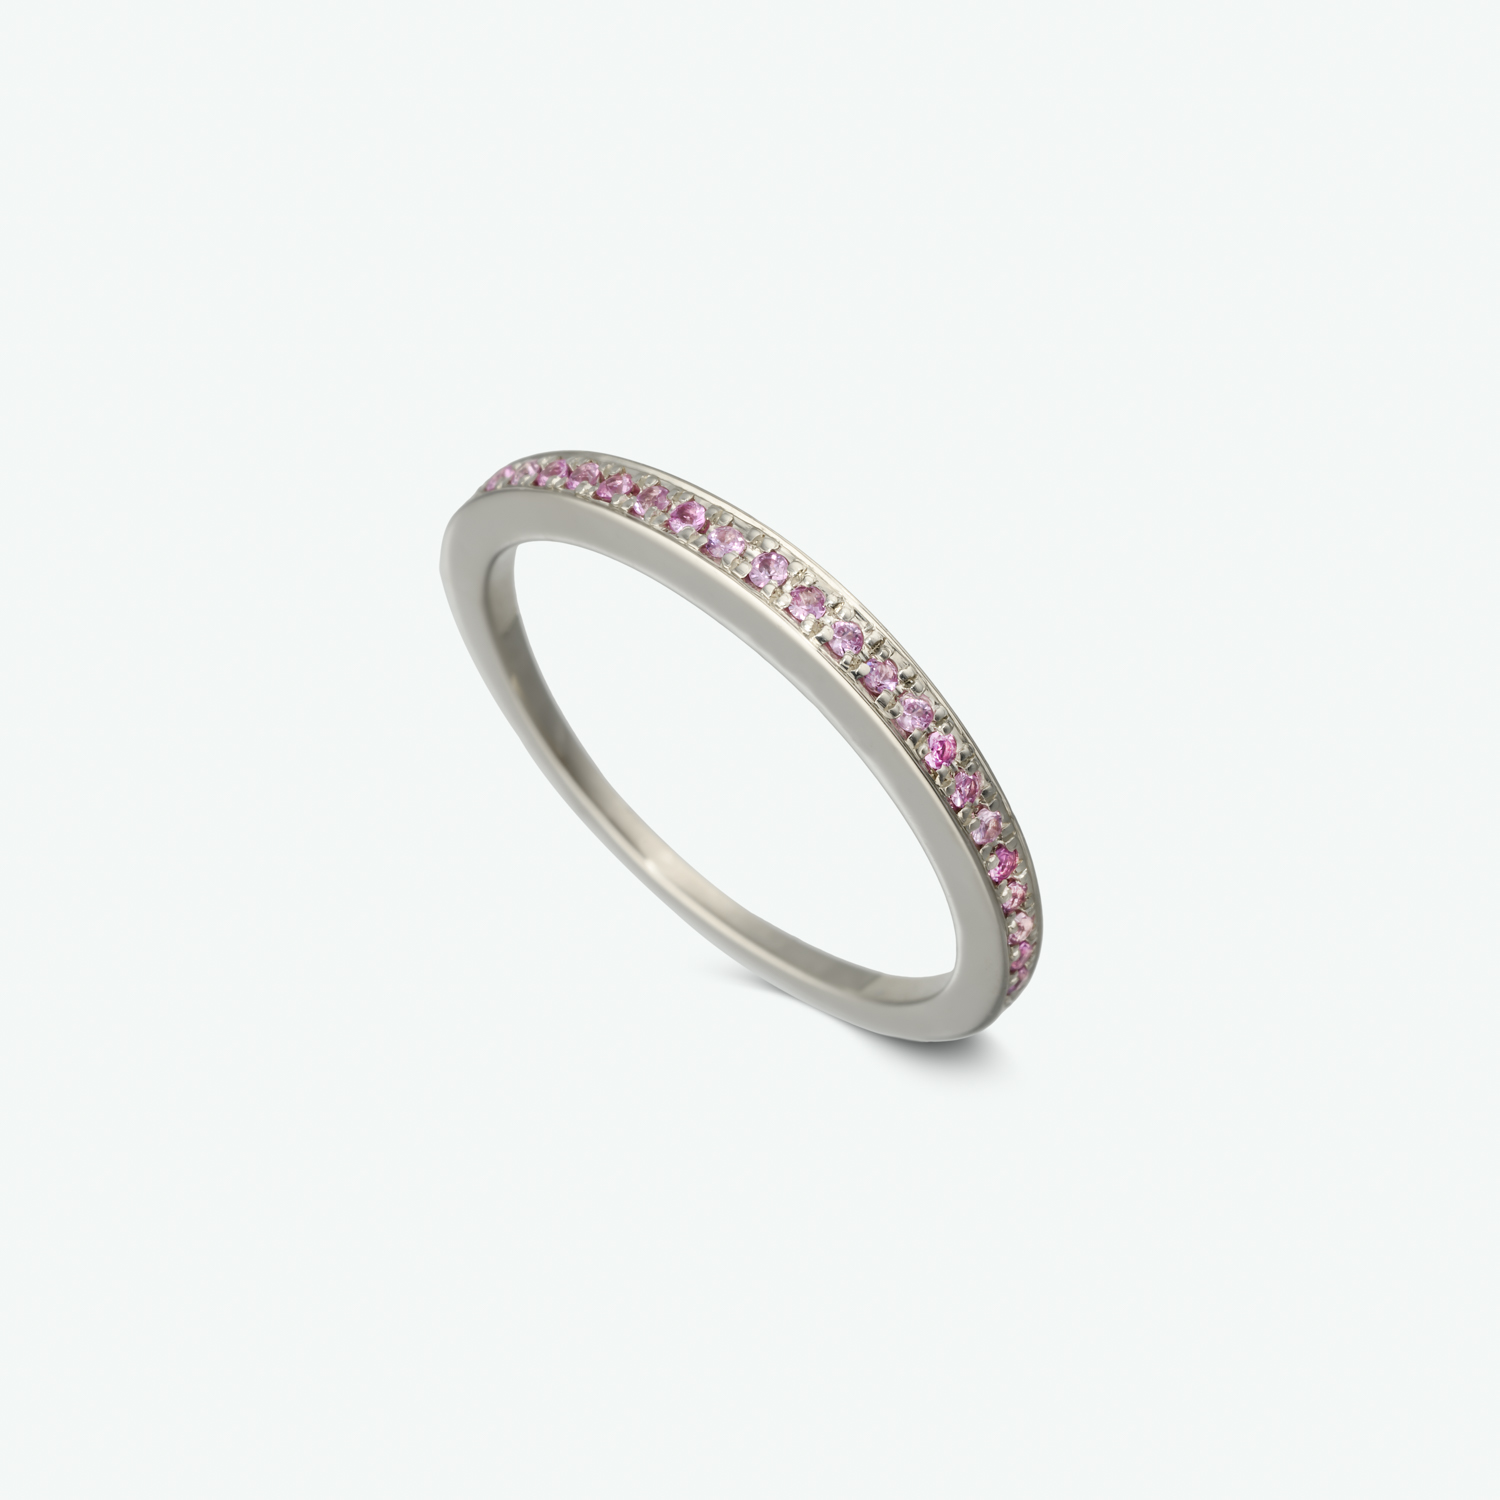 A delicate 14k white gold ring set with vivid pink sapphires.   PS: 0.10 ct